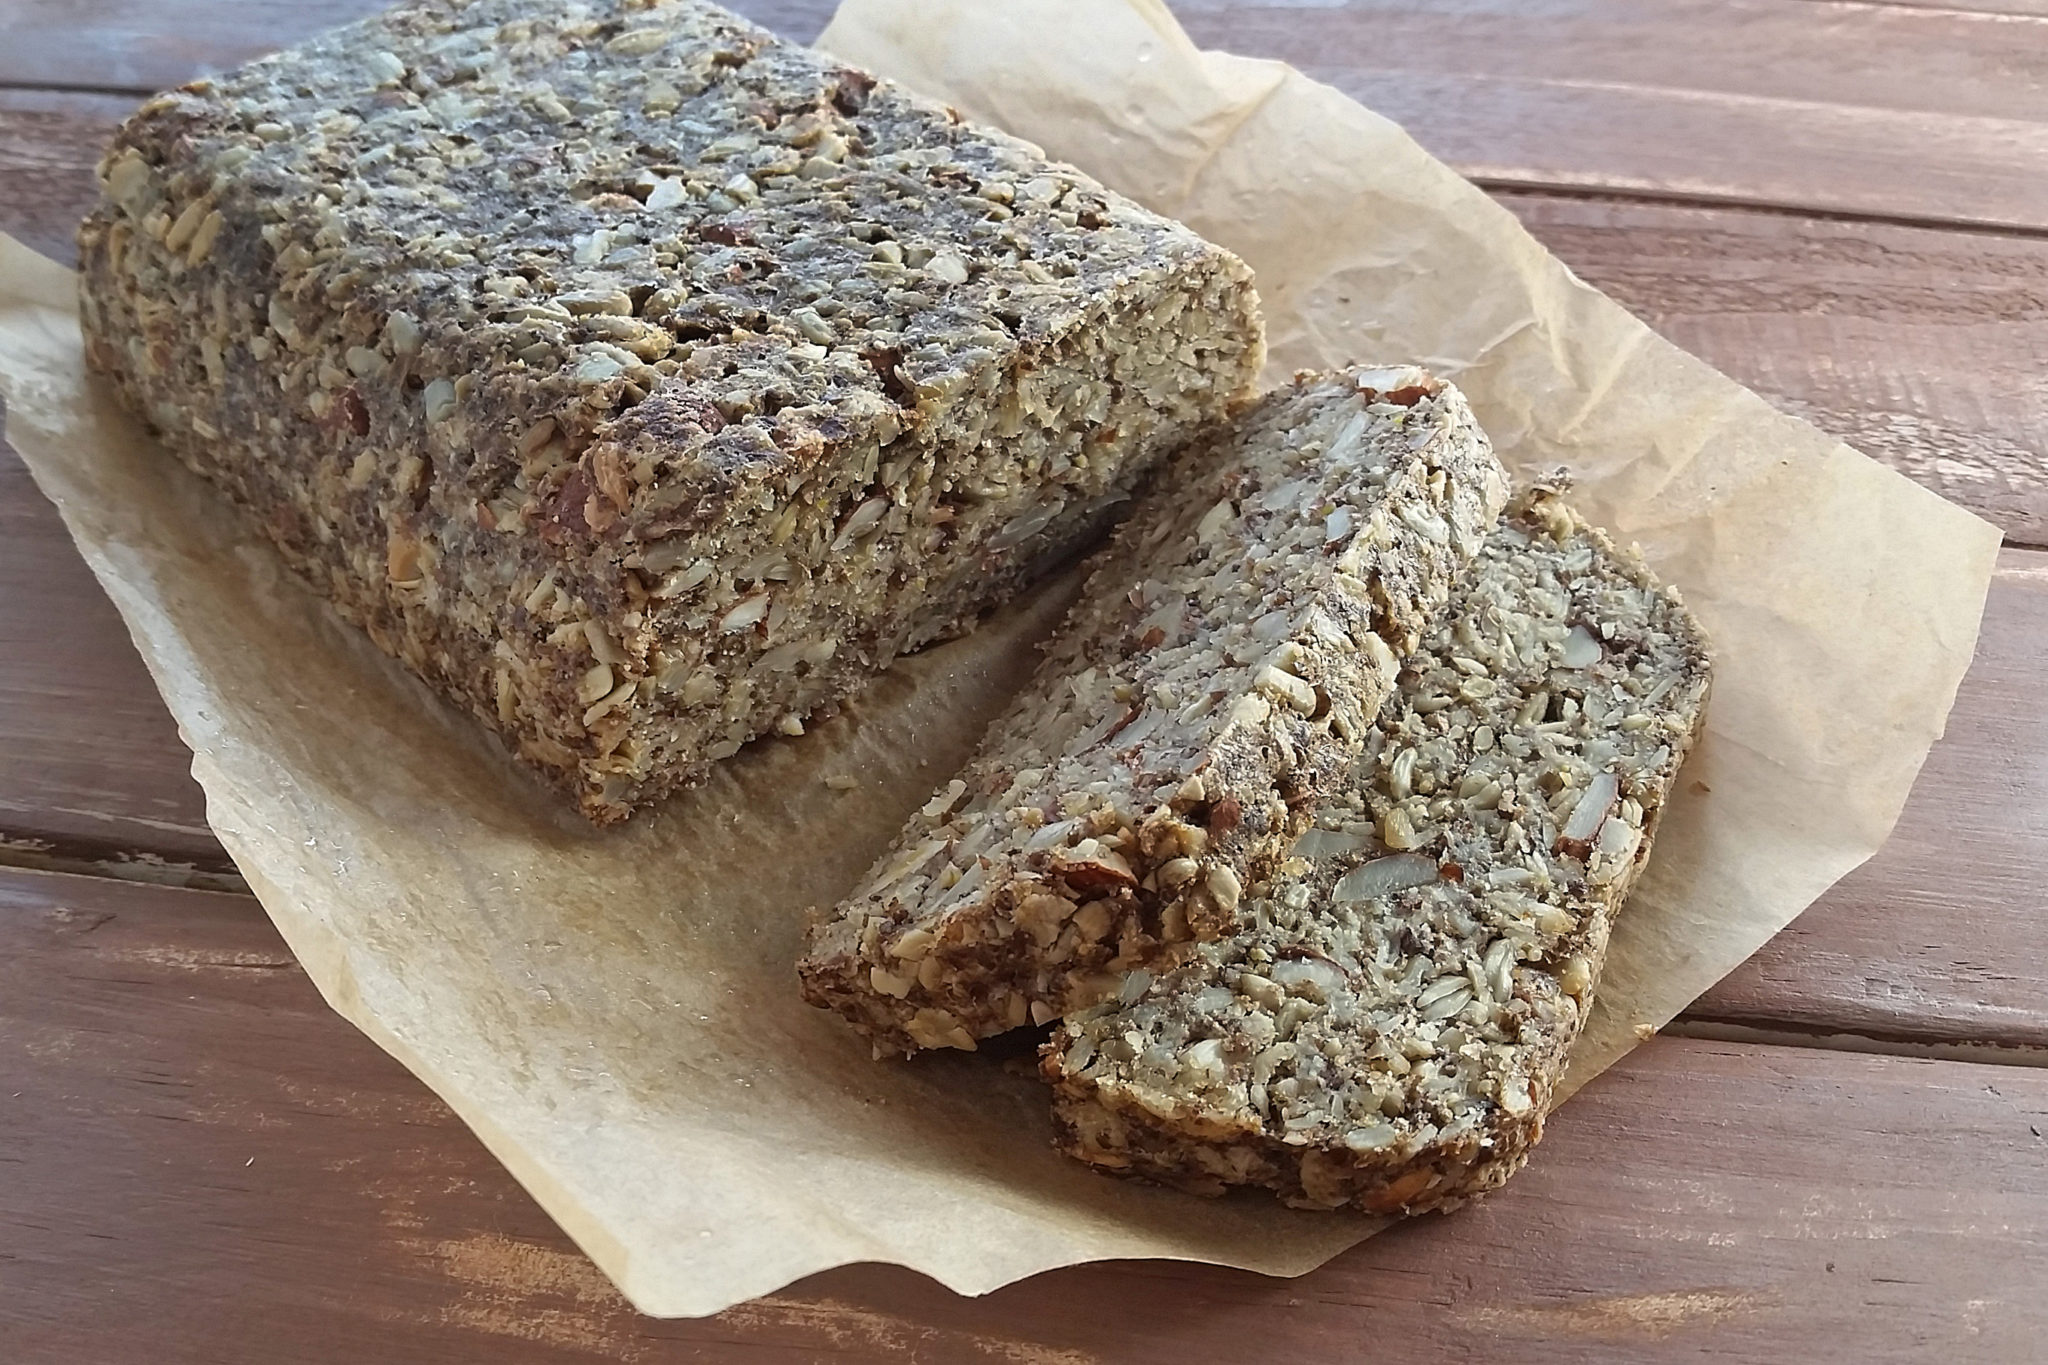 RECIPE: Nut & Seed Bread [Gluten-Free]